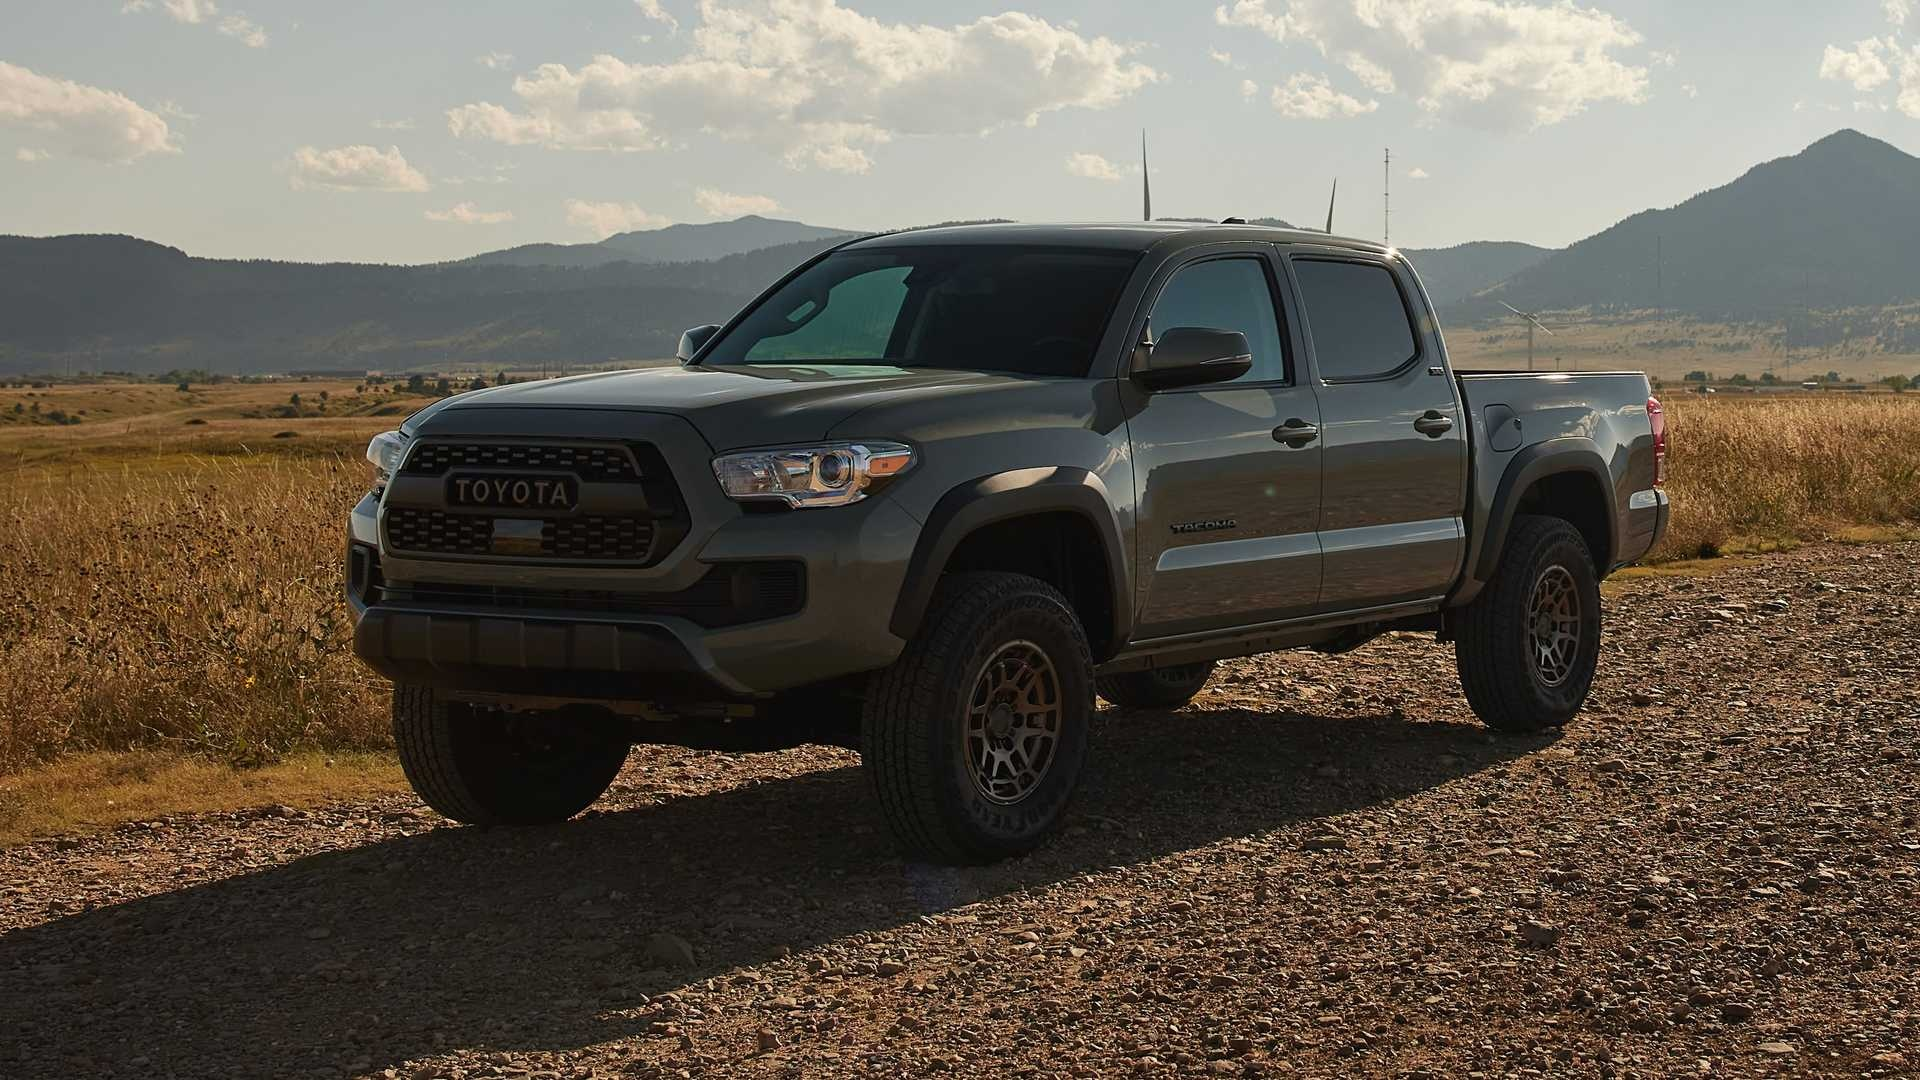 The he moi cua Toyota Tacoma se khong dung chung khung gam voi Hilux anh 2